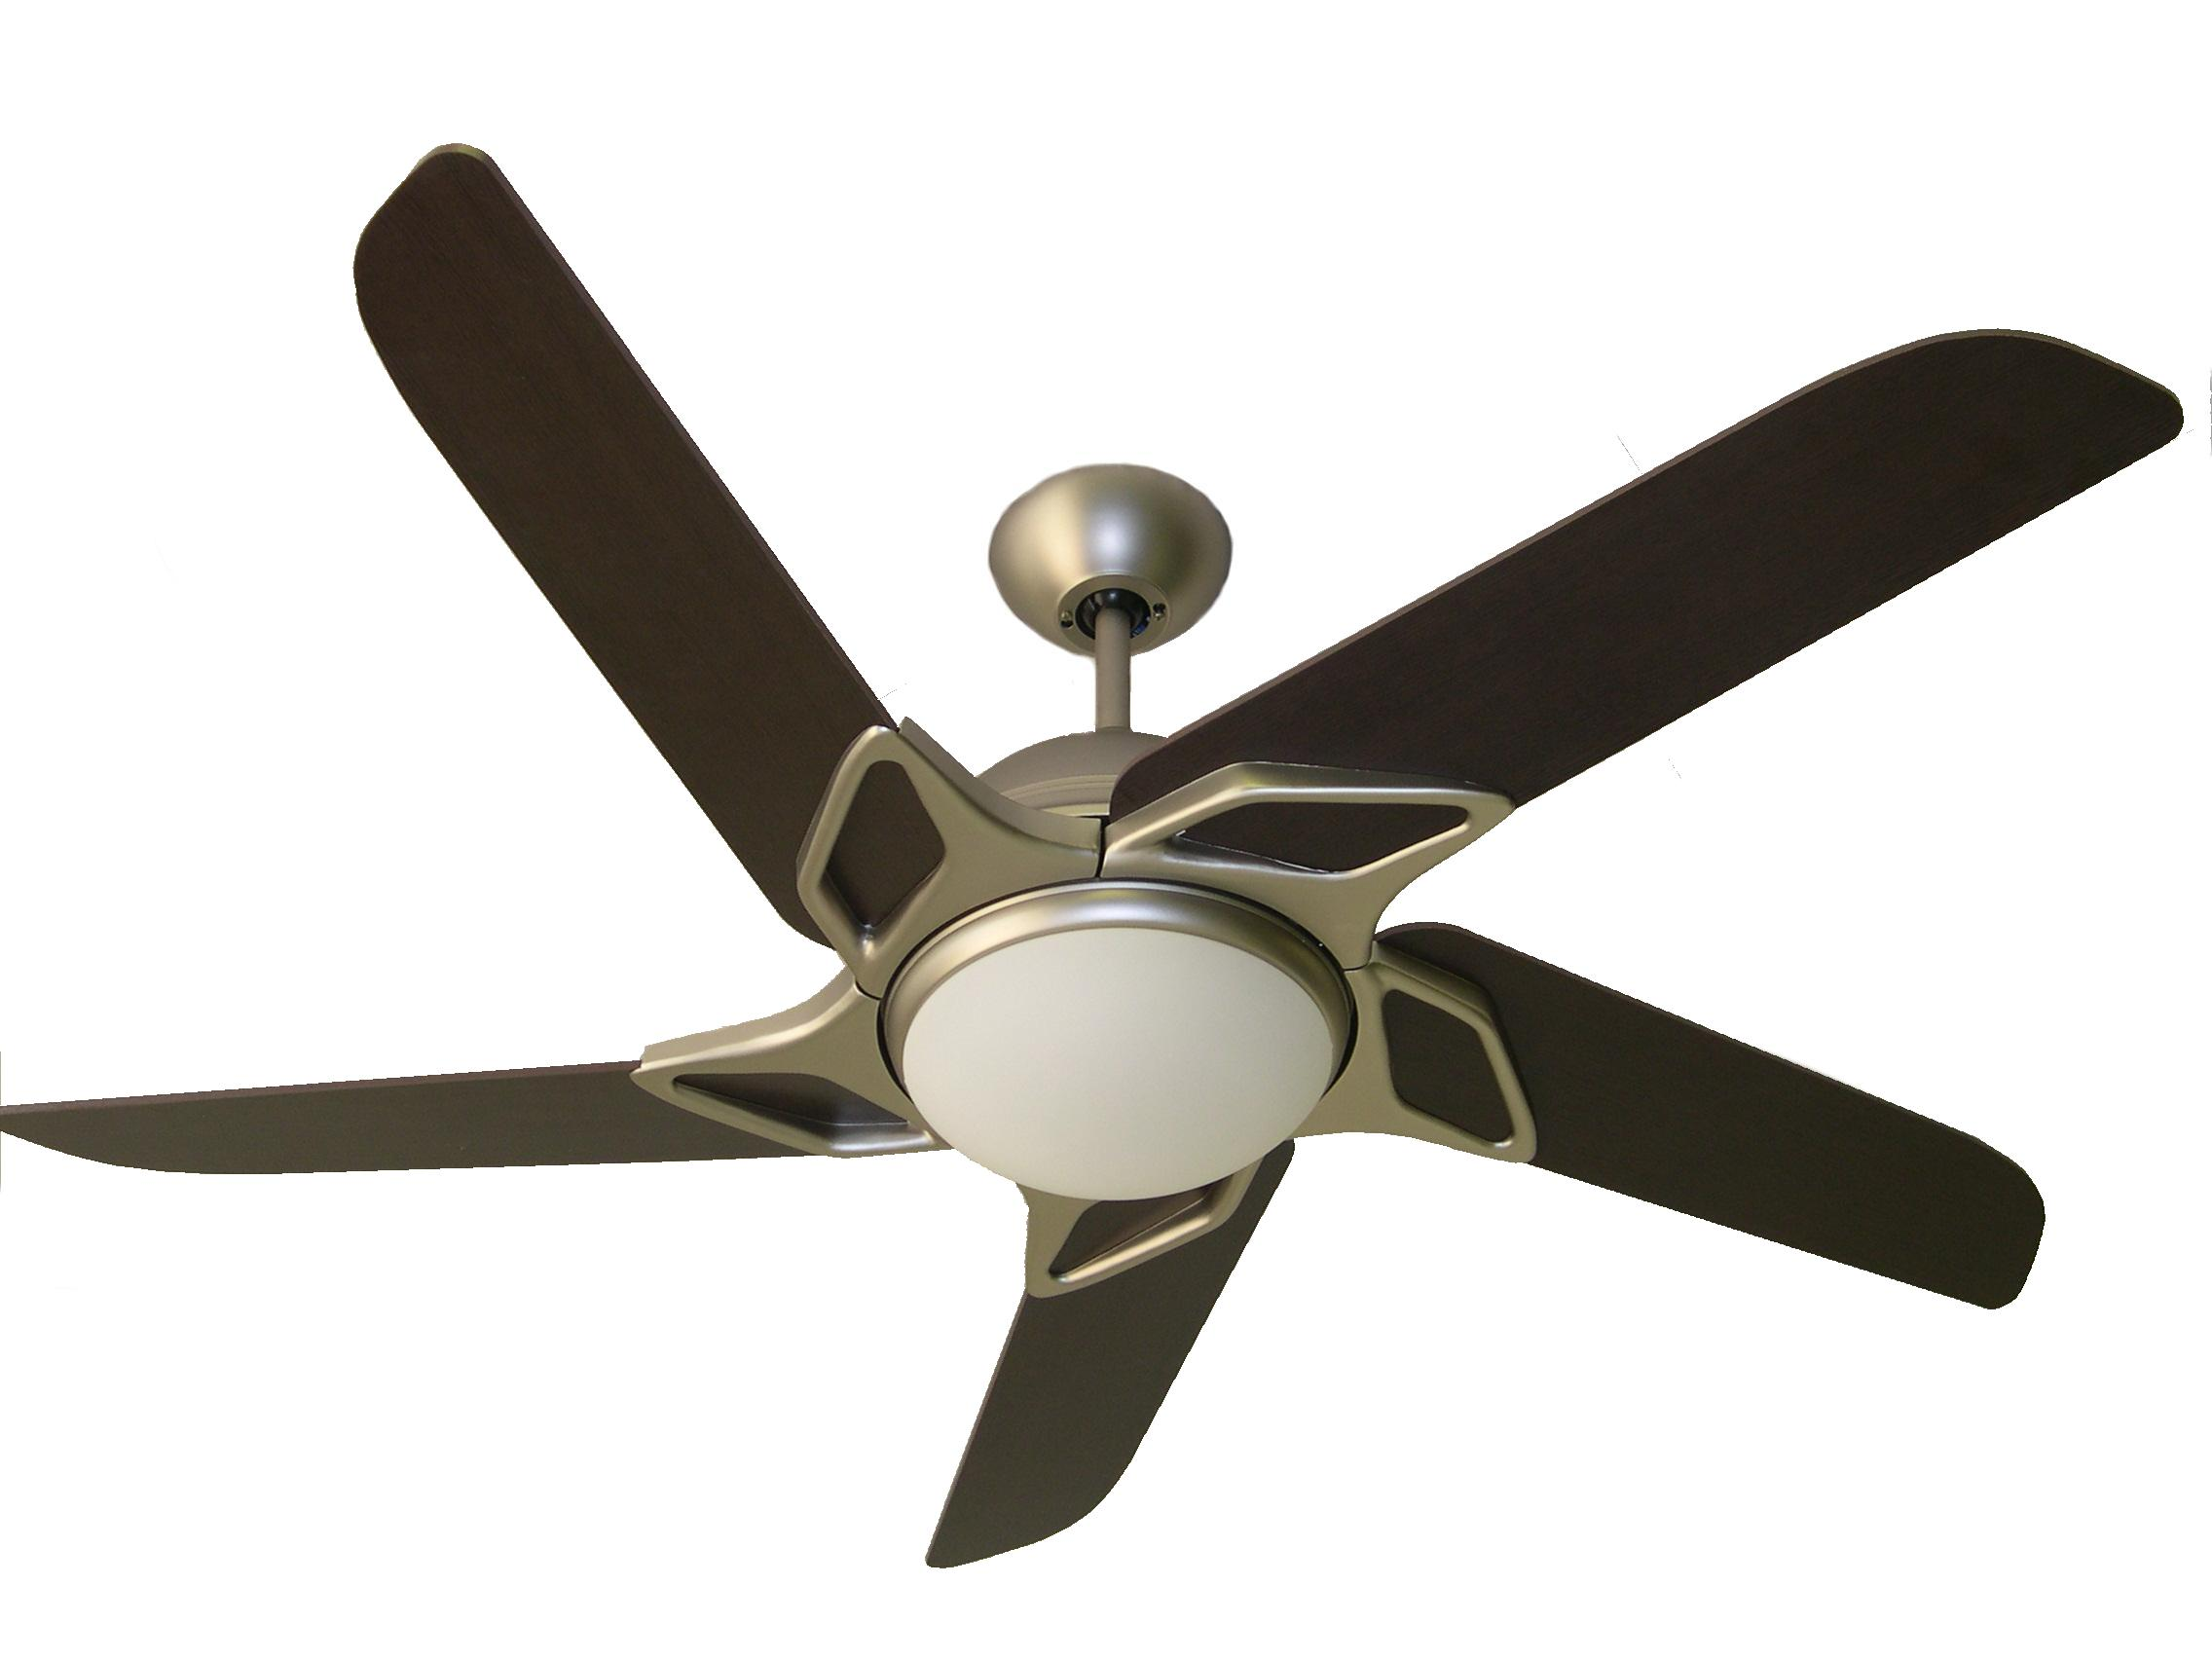 Top 10 latest ceiling fans of 2019 warisan lighting - Pictures of ceiling fans ...